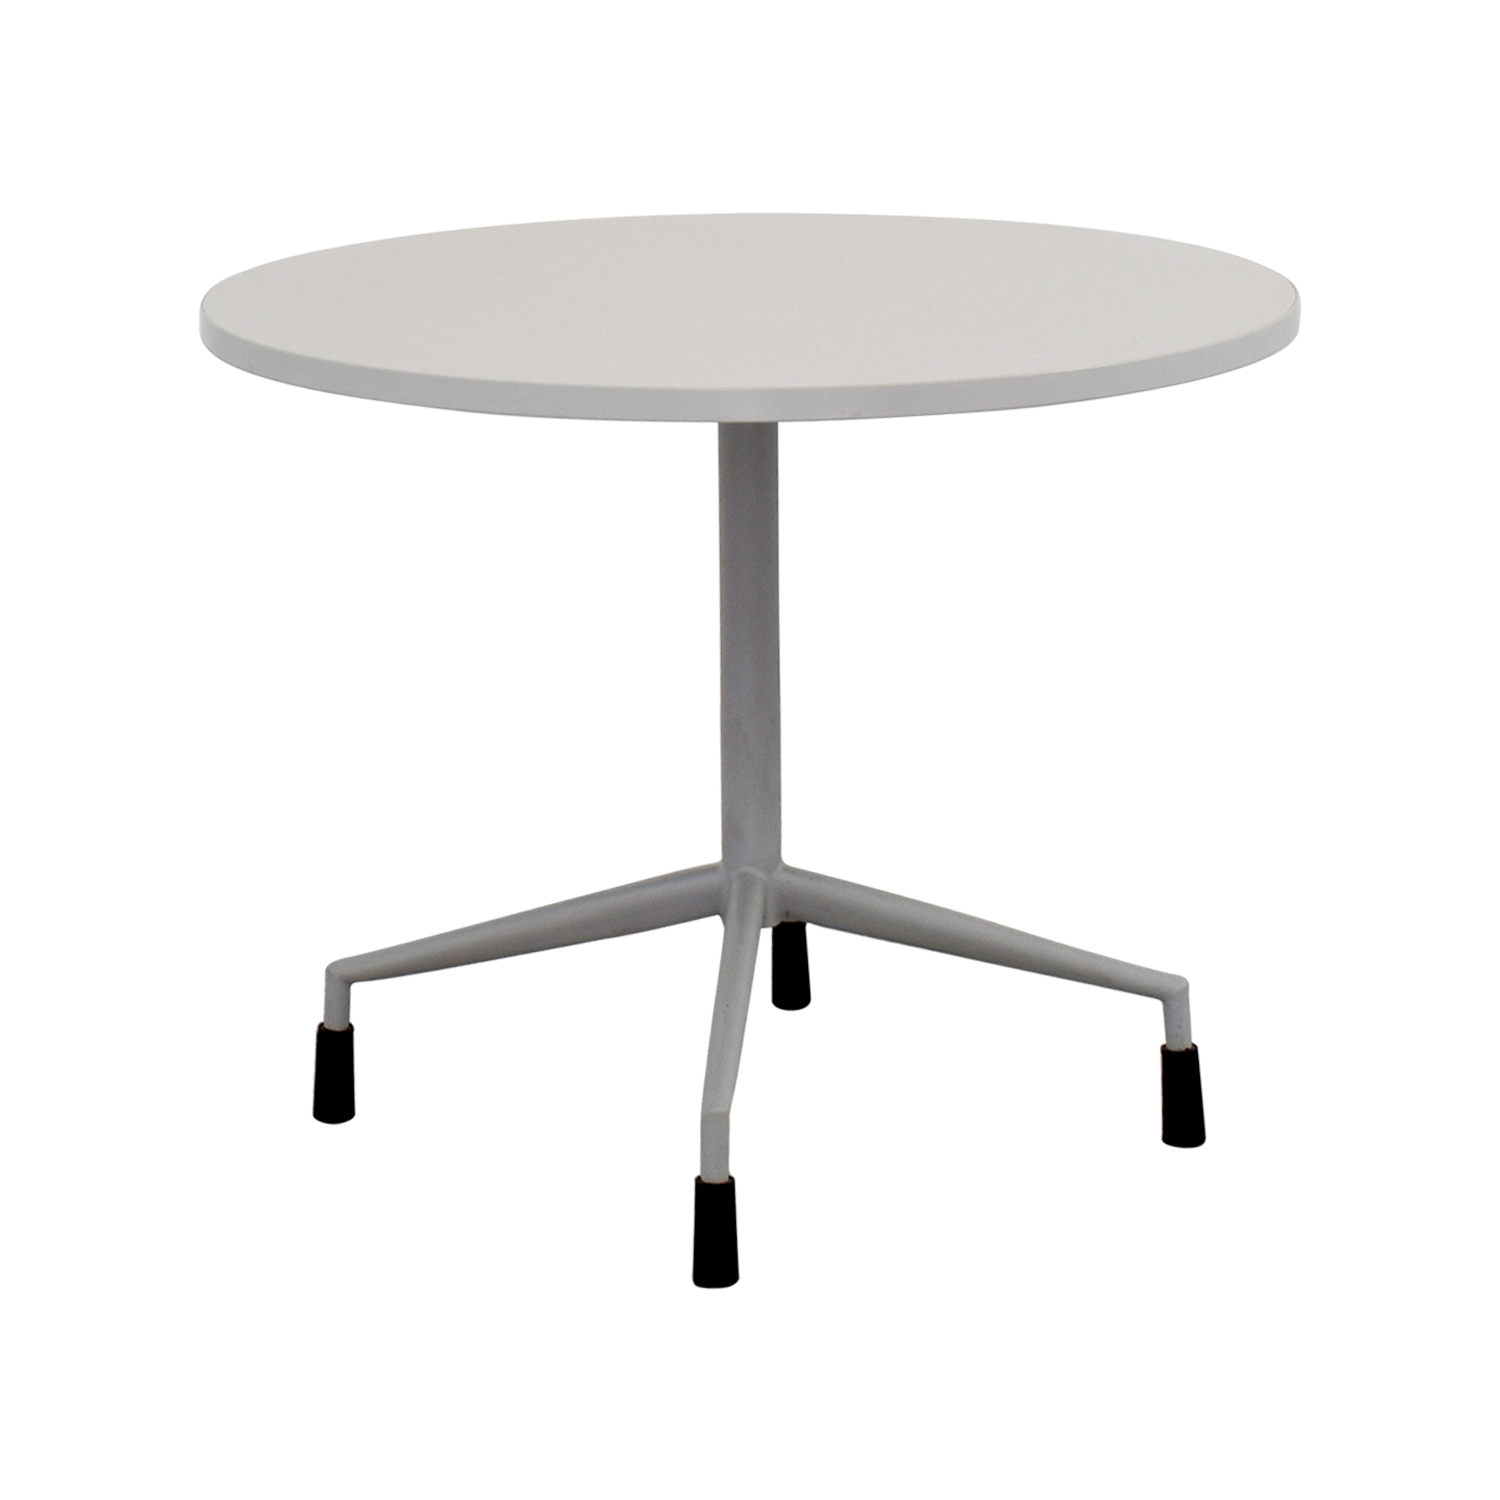 71 off white round table with leg base tables. Black Bedroom Furniture Sets. Home Design Ideas